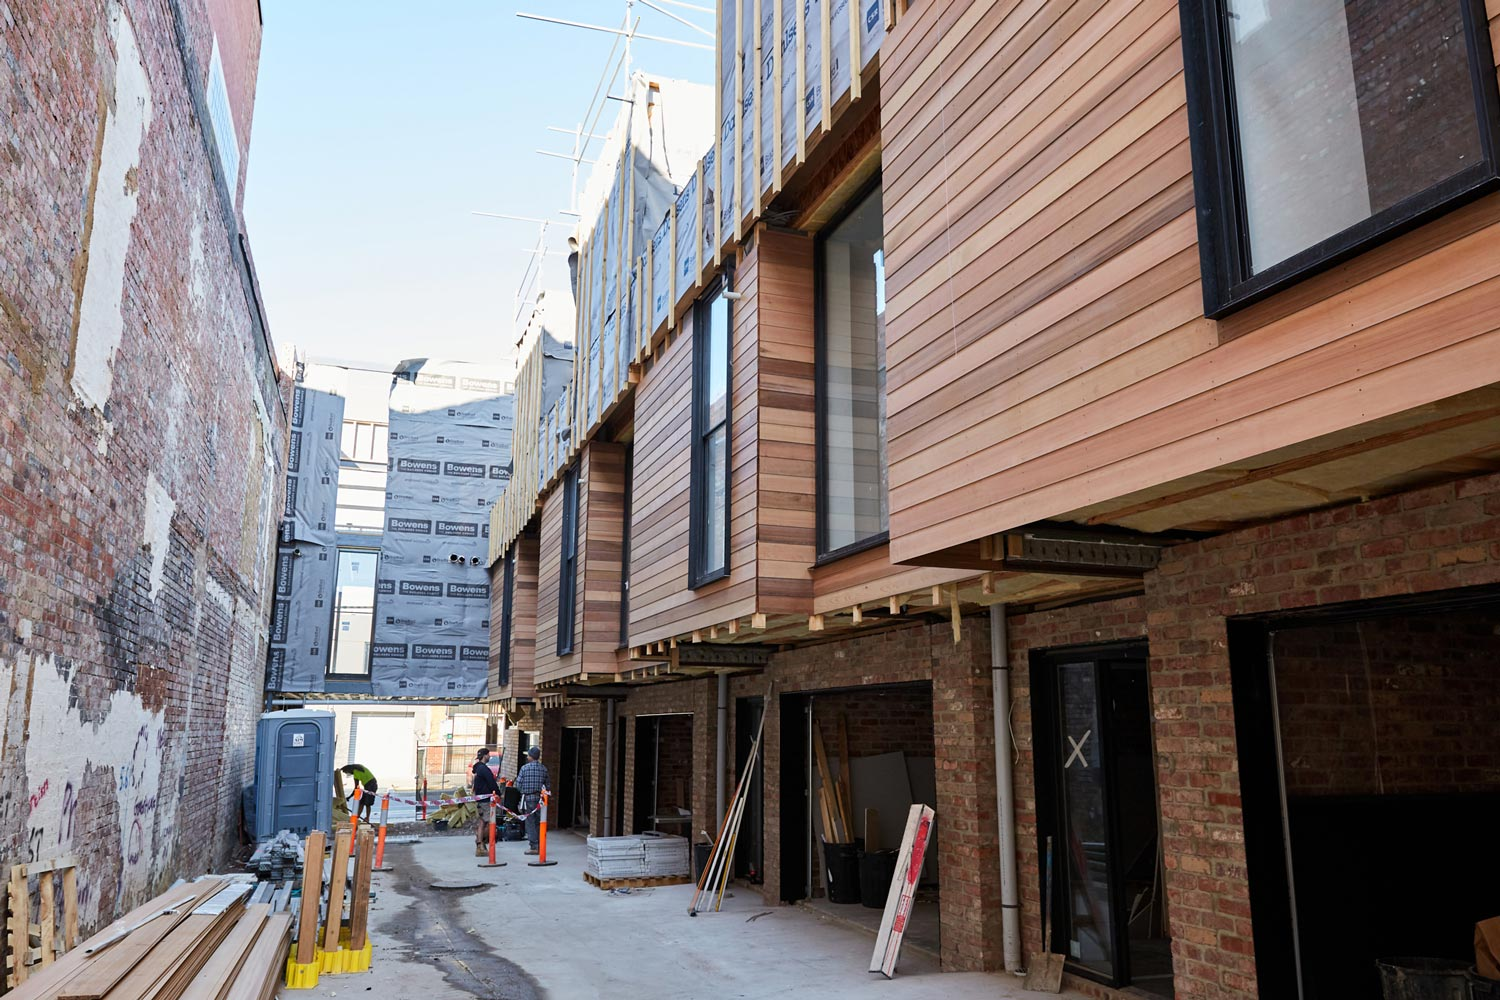 The Townhouse Exteriors at Leveson Place